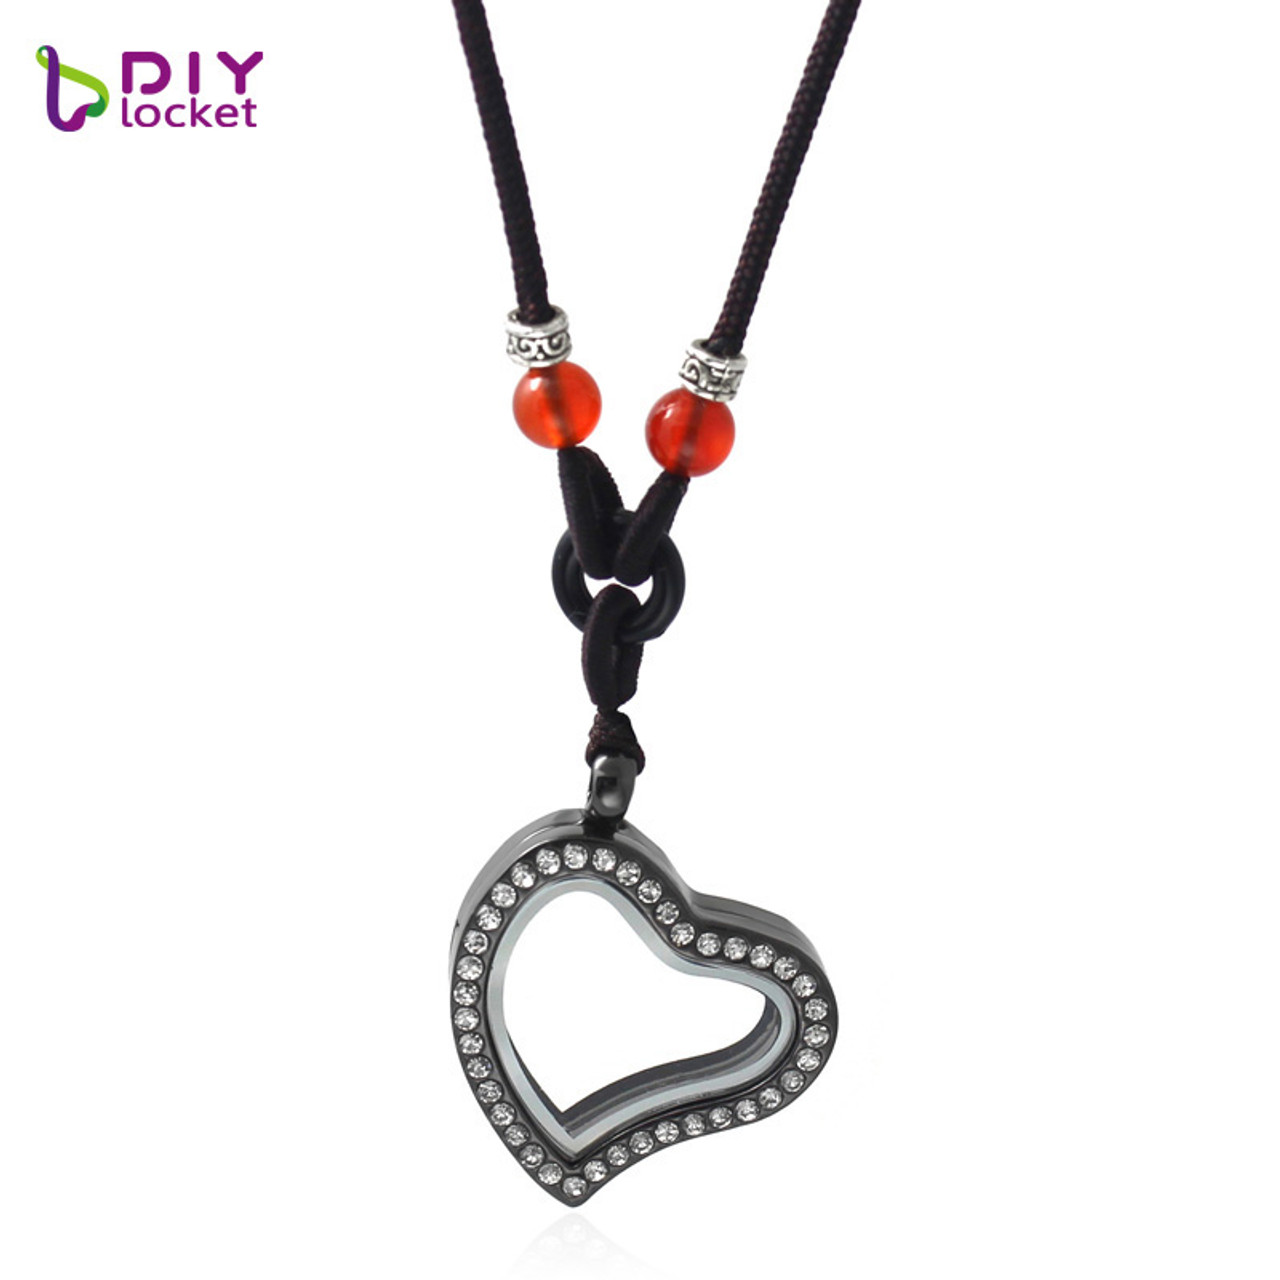 Diylocketcom Jewelry Wholesale Heart Floating Charms Locket